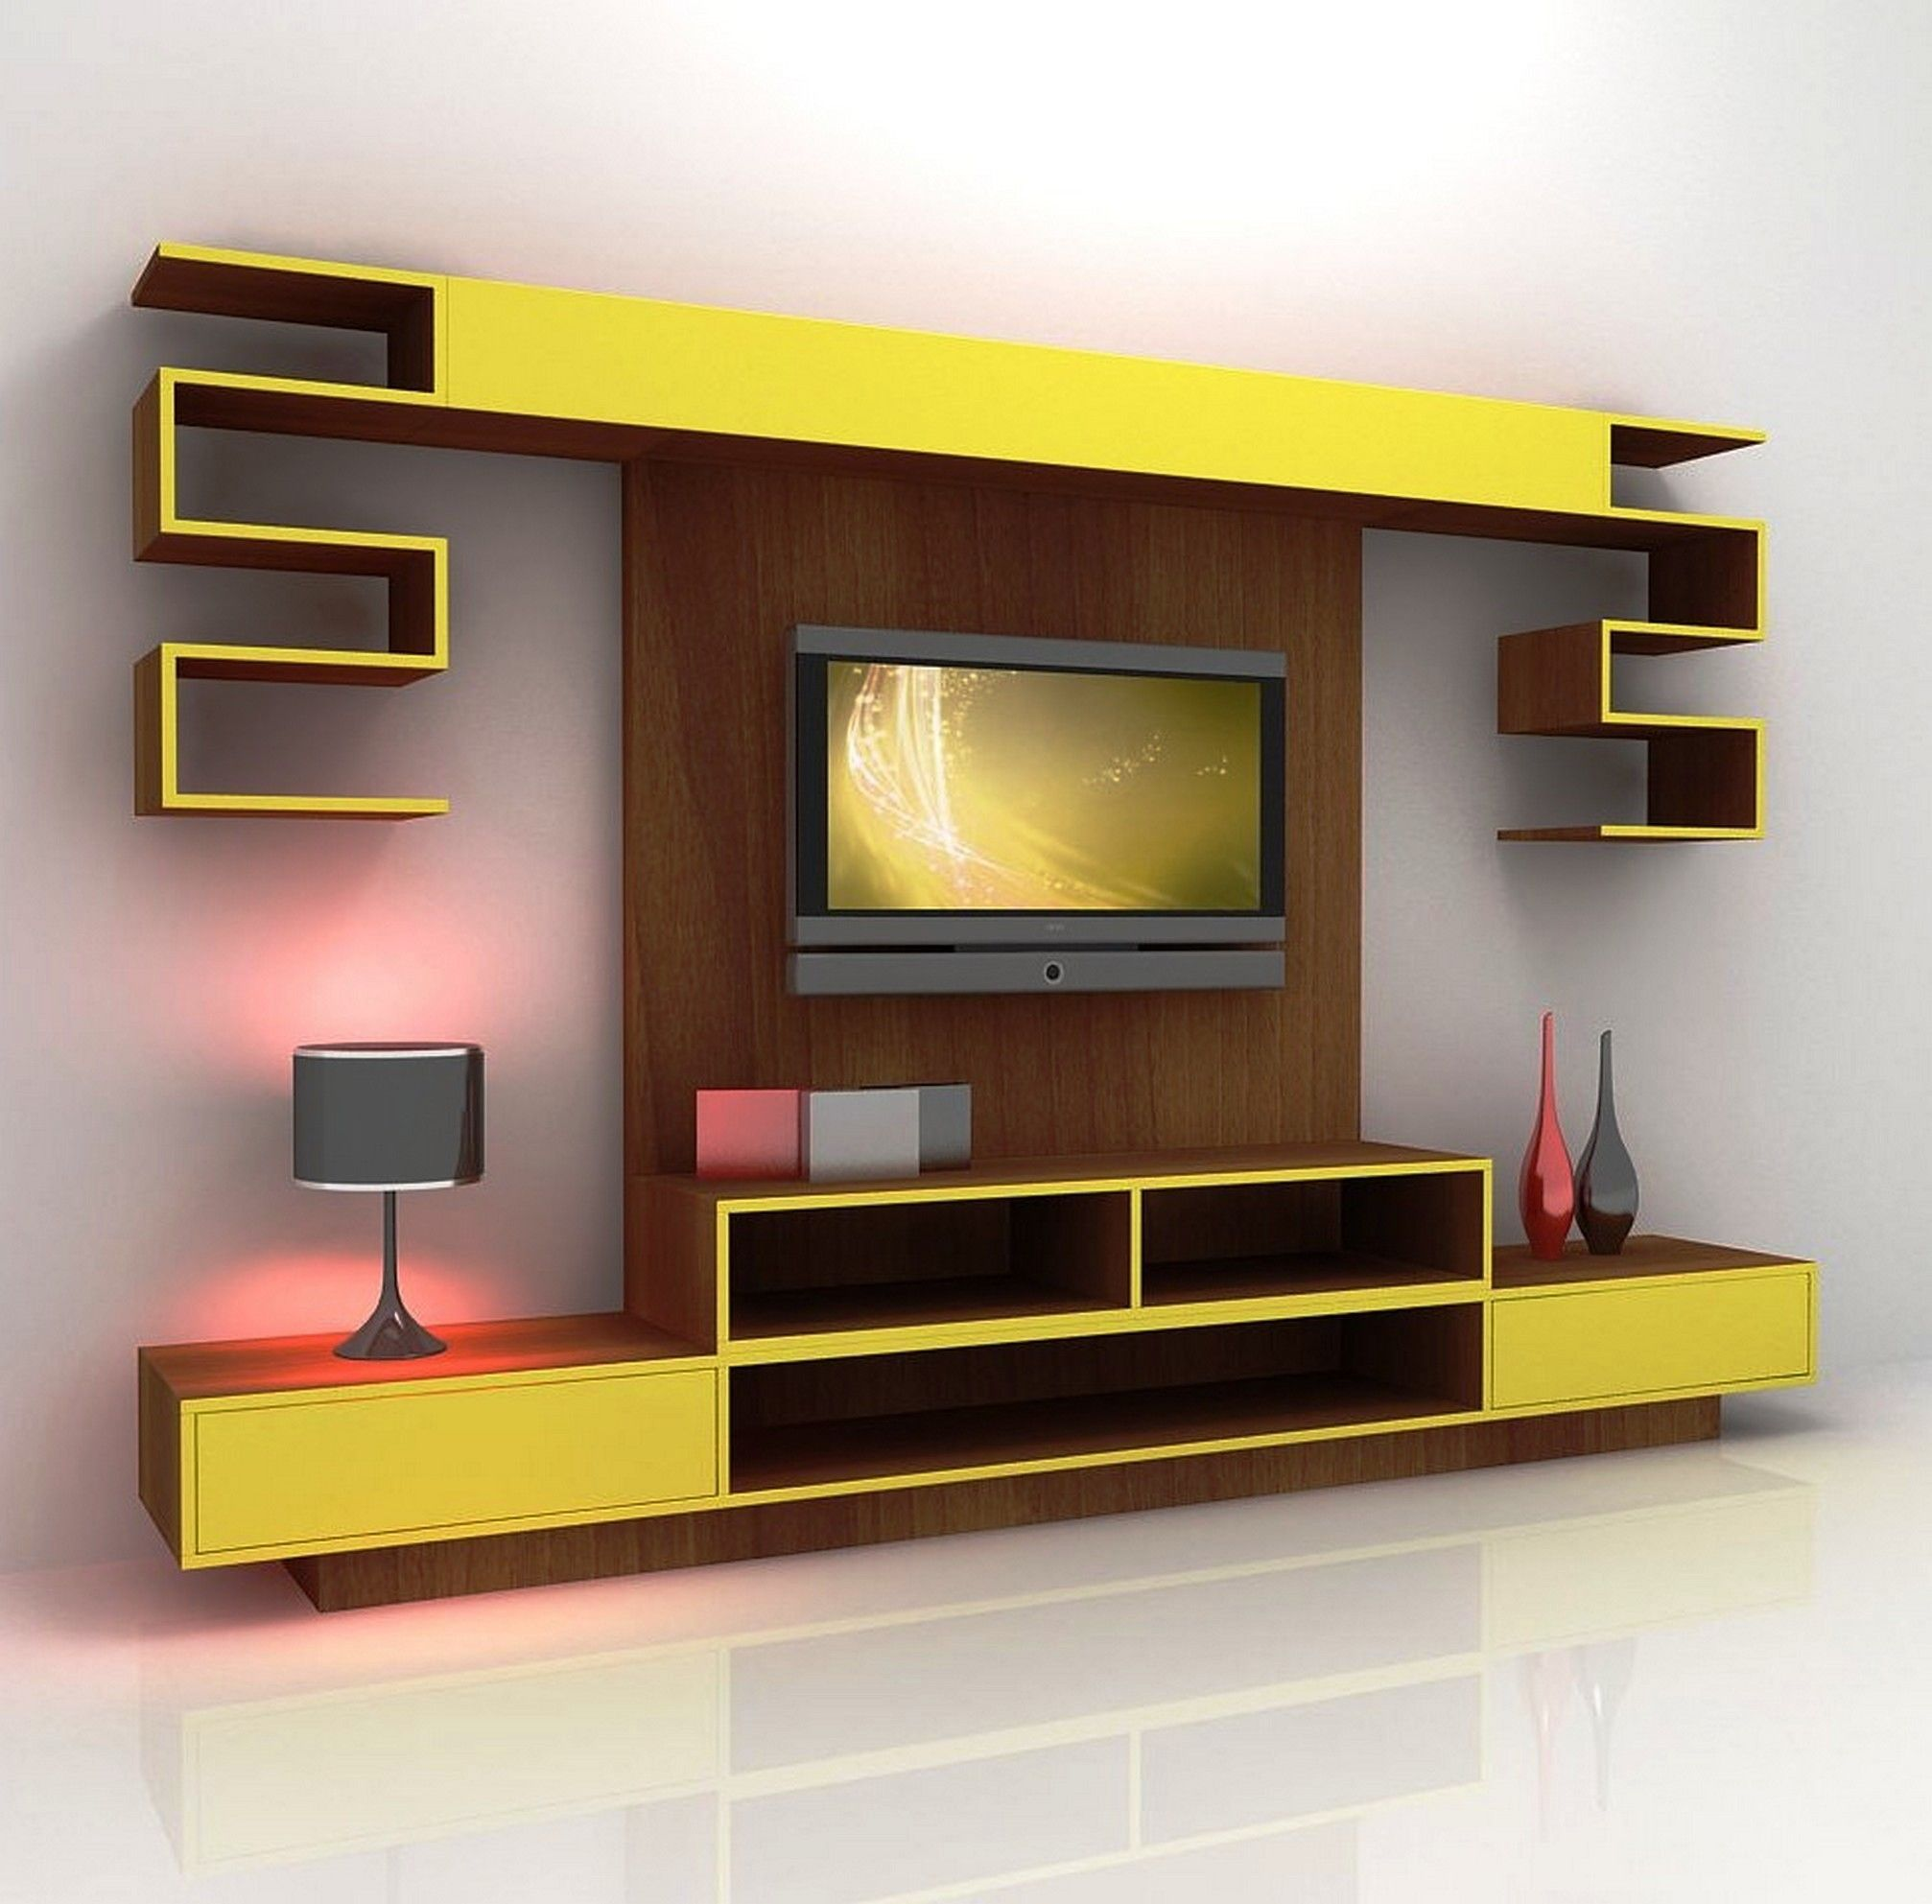 Living Room With Tv Mounted On Wall hide wires on wall. for the wc301 series. explore hide wires hide